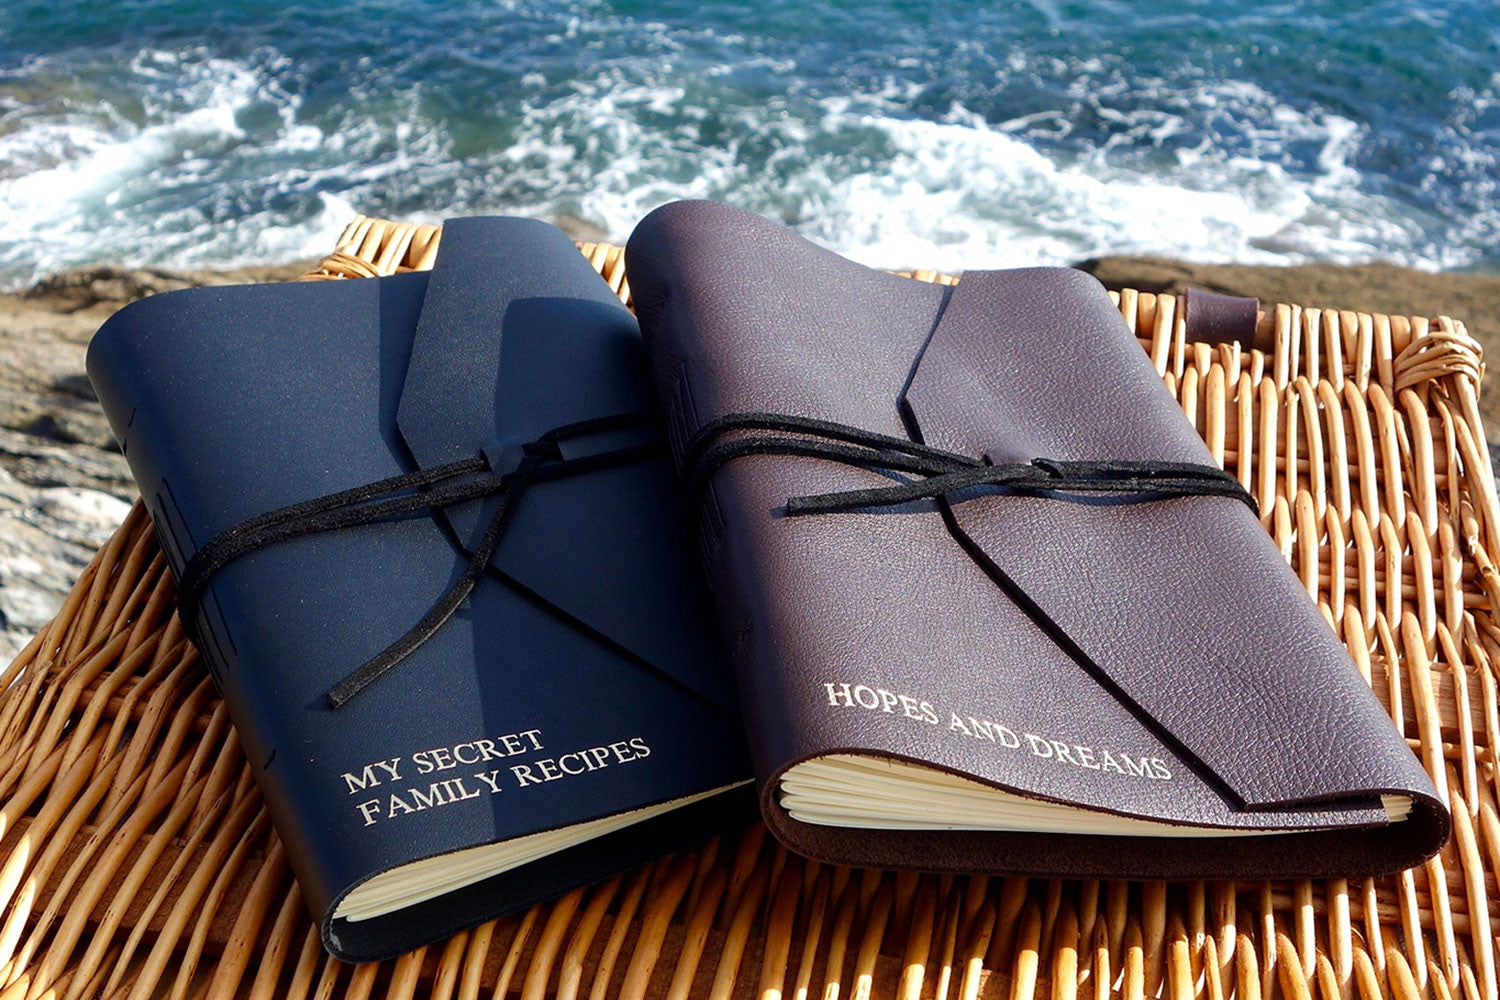 Two leather journals on a picnic hamper by the sea, personalised with My secret family recipes and Hopes and dreams